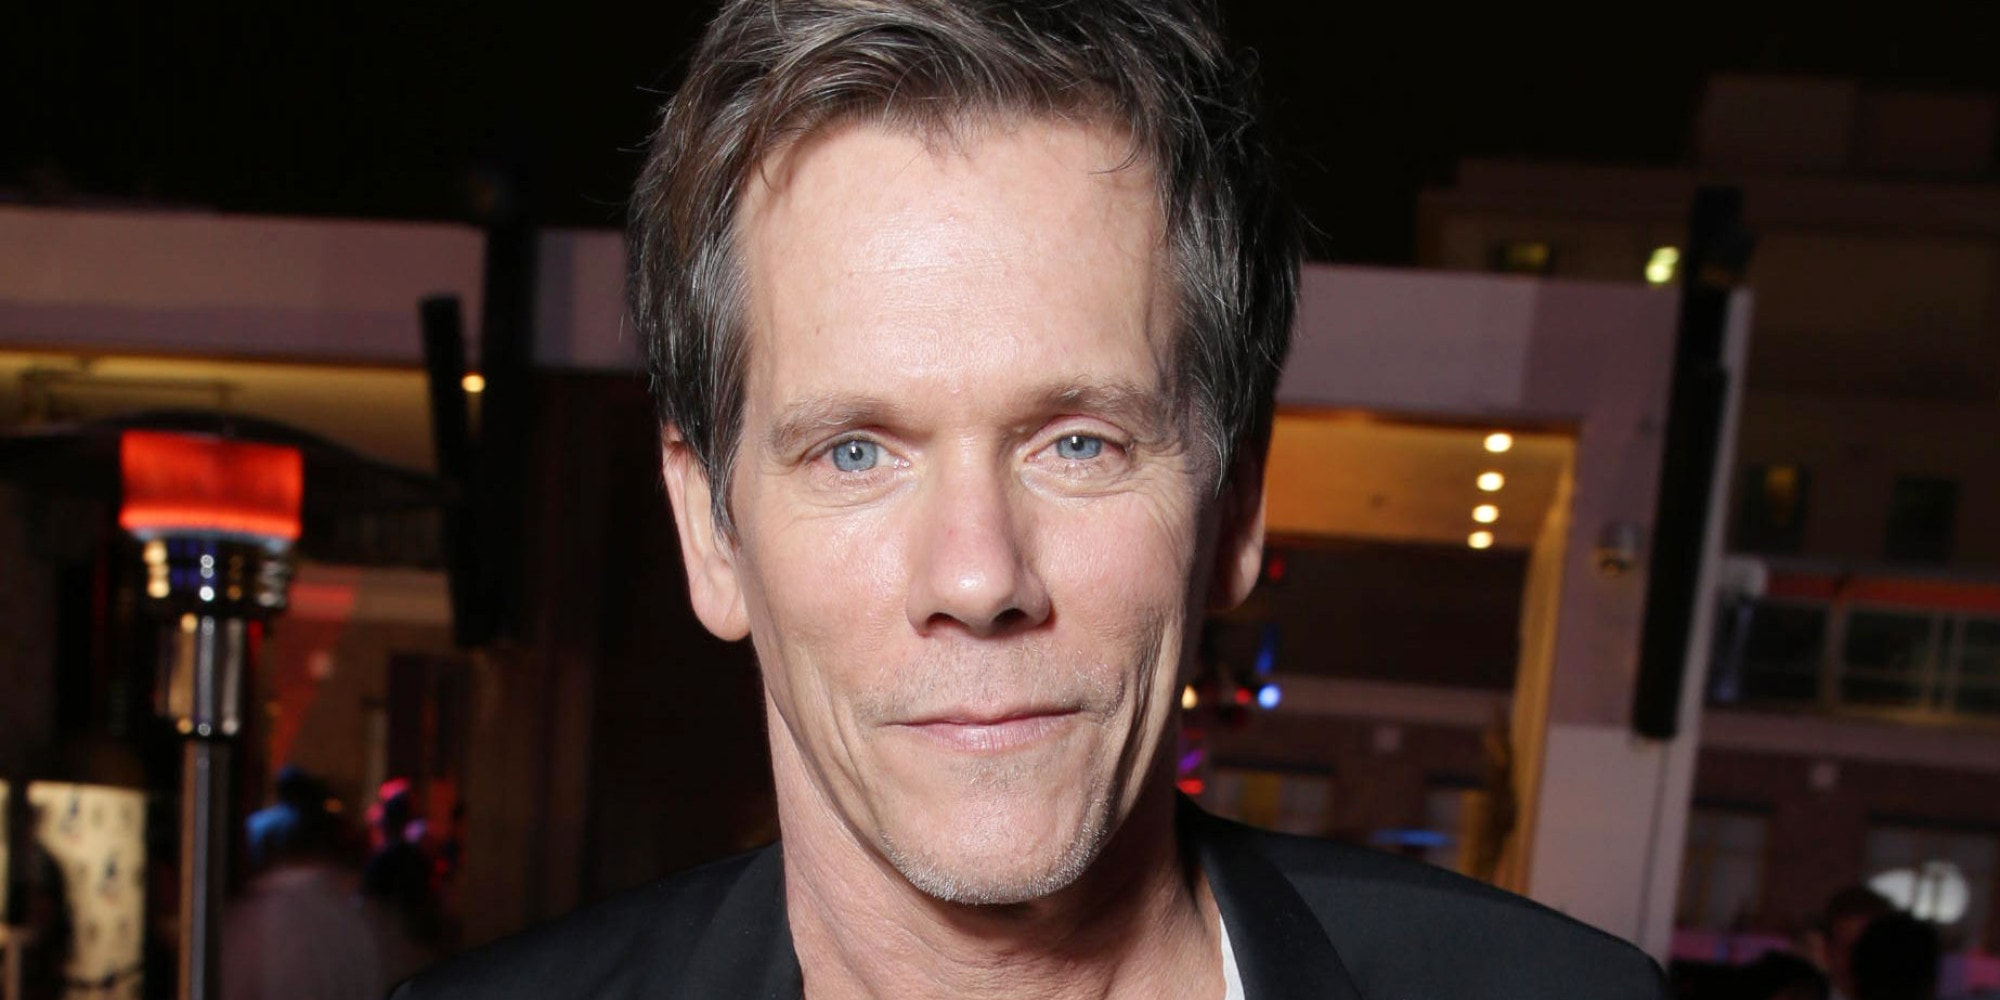 Kevin Bacon Widescreen for desktop